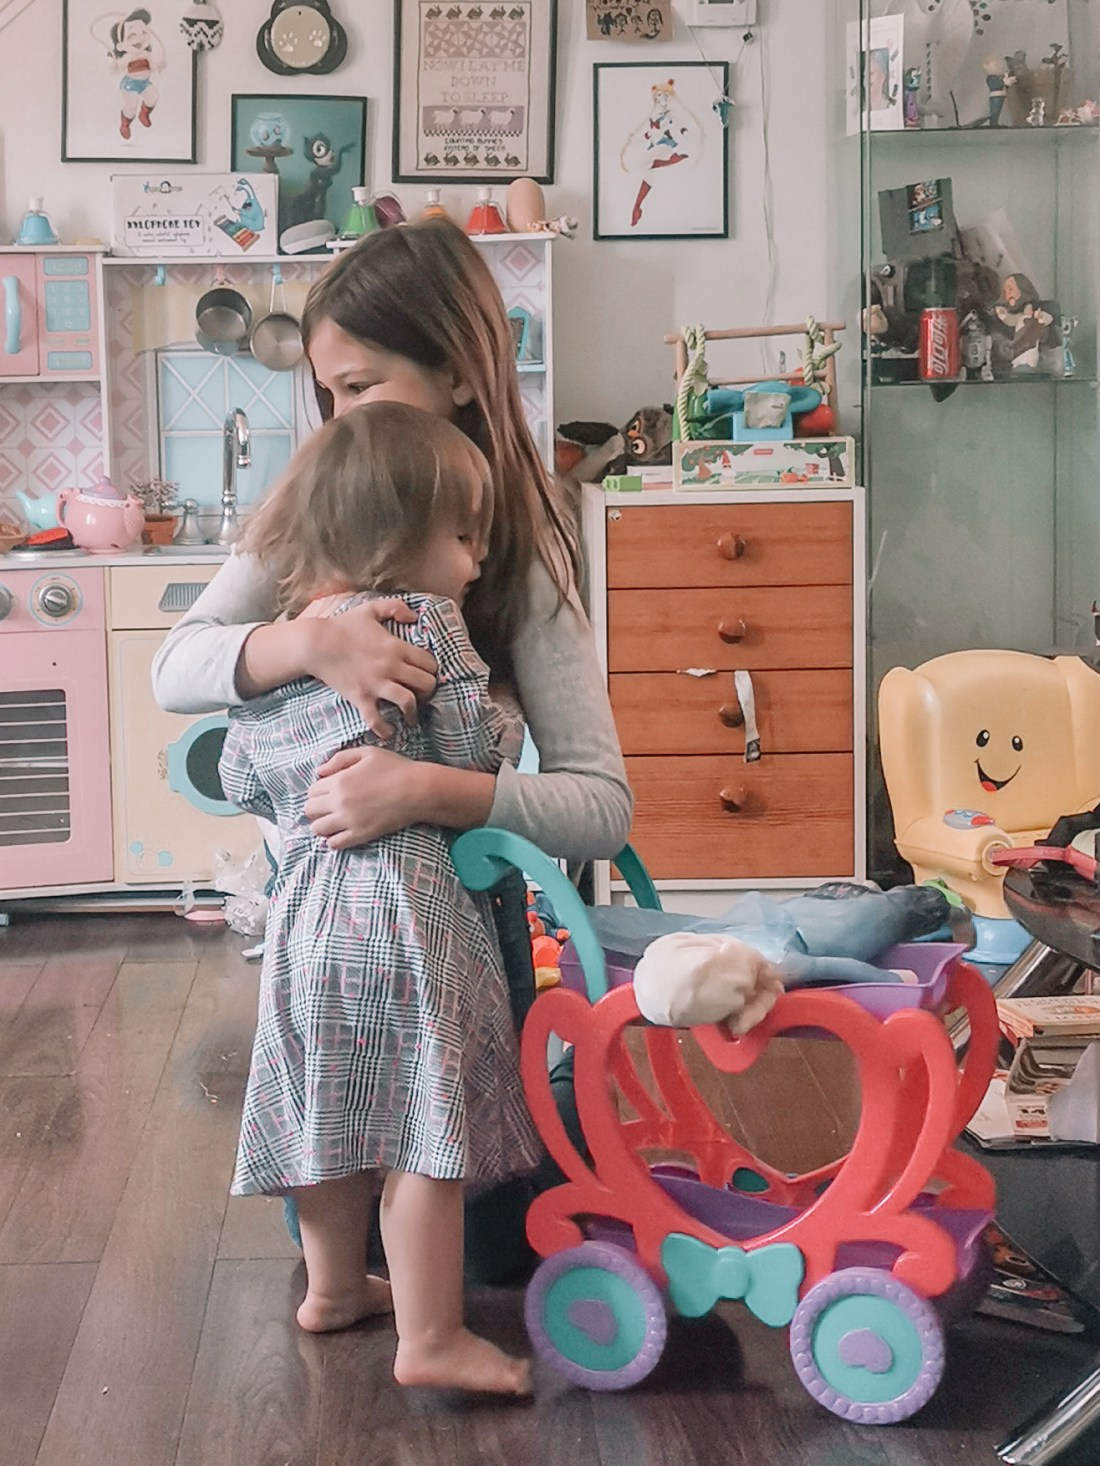 Edmonton, Alberta, Canada - Family Time is the best time, parenting is hard but when my kids hug like this it's worth it.